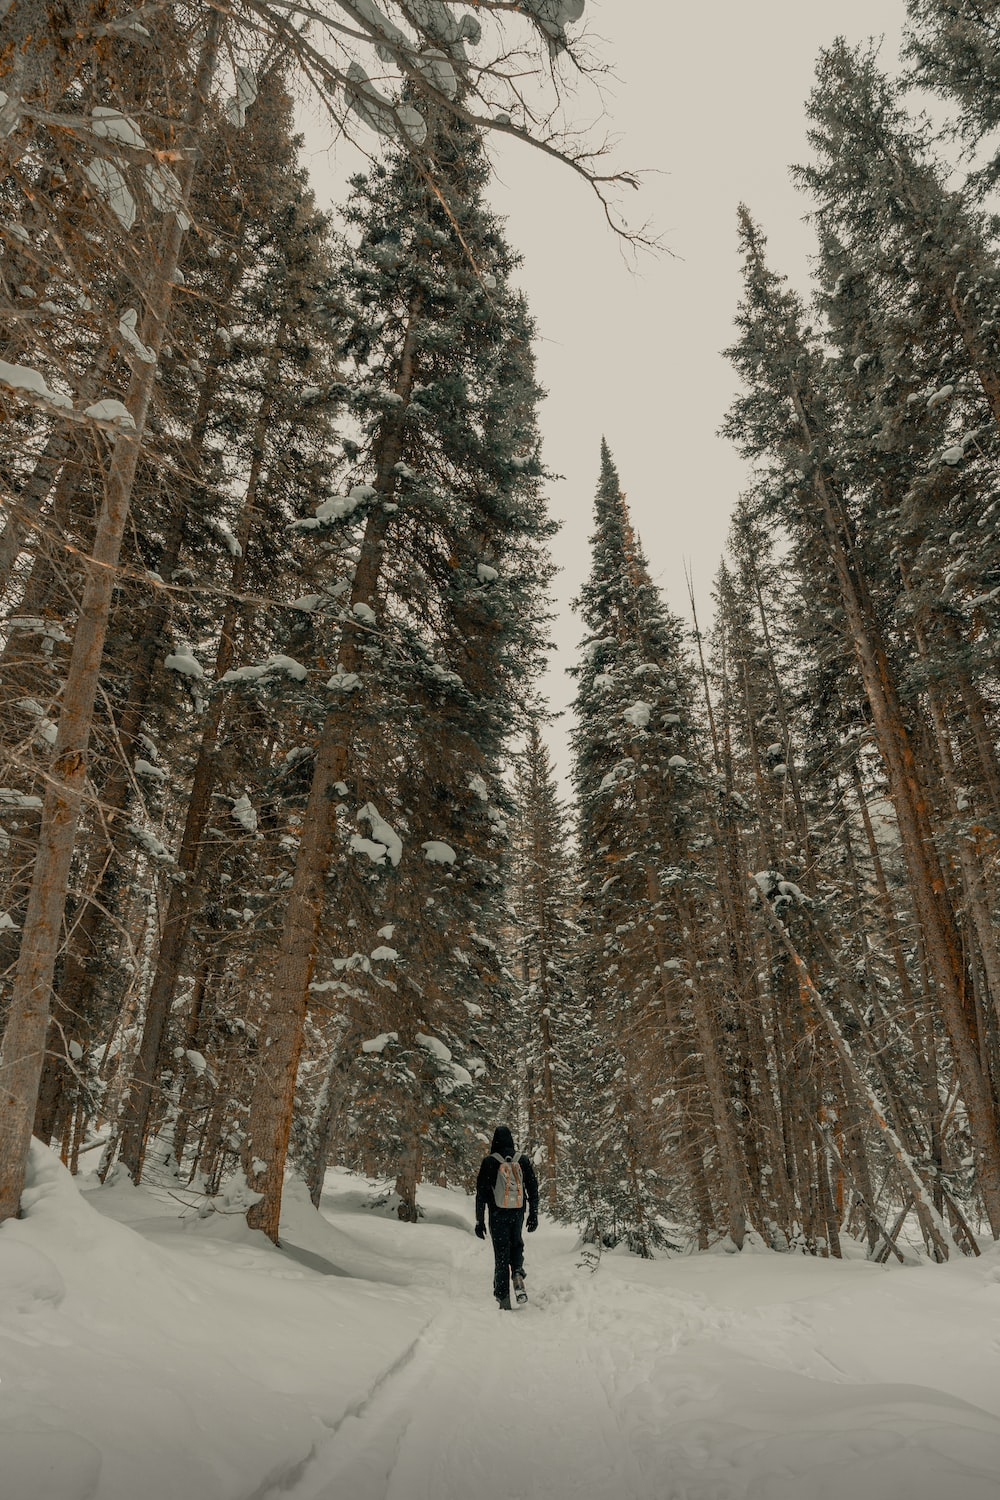 person walking on snow between pine trees